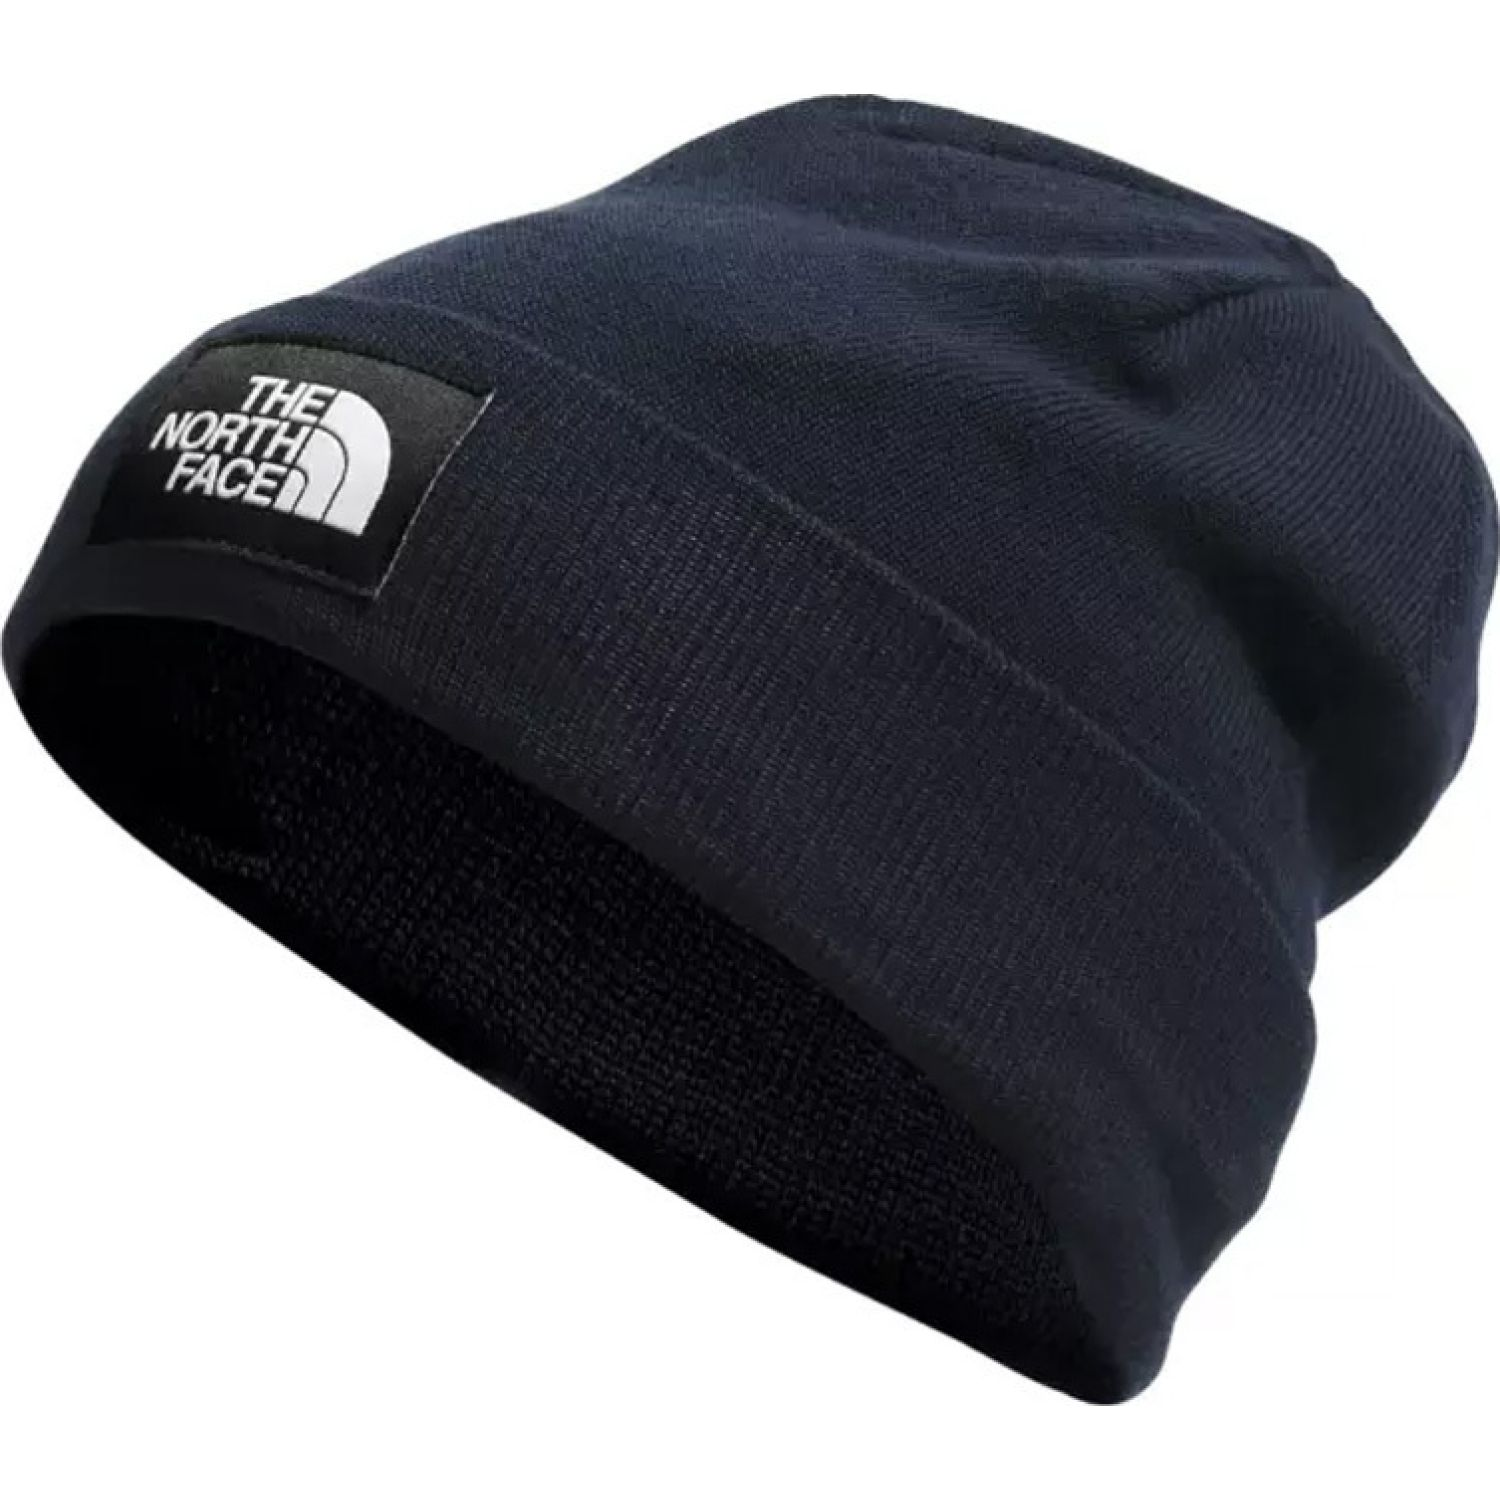 The North Face Dock Worker Recycled Beanie Azul Gorras de béisbol